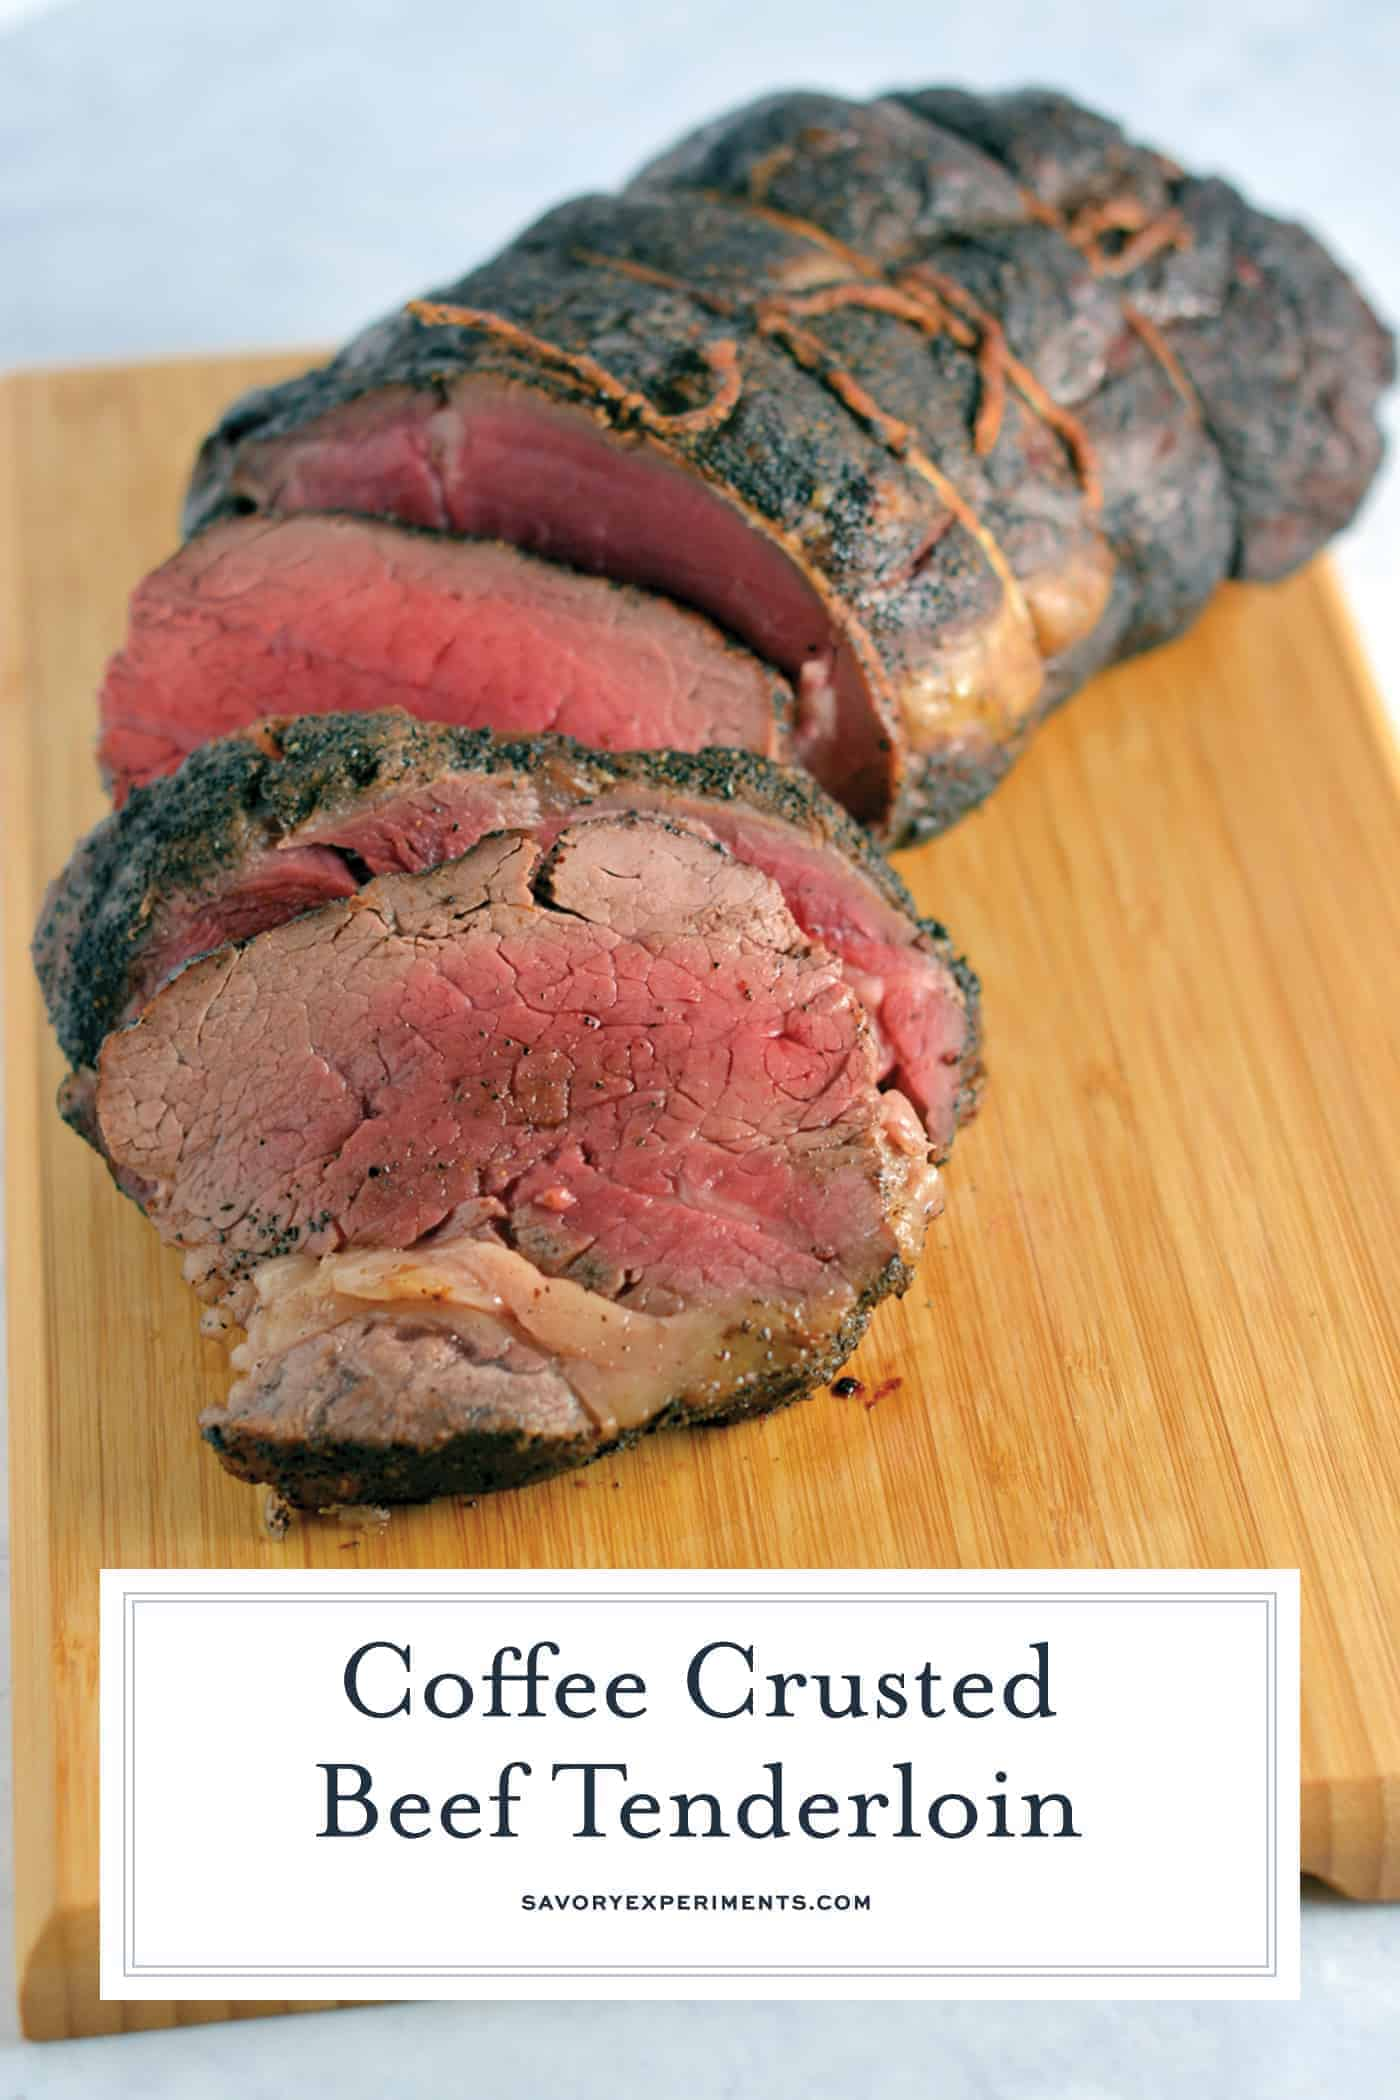 Coffee Crusted Beef Tenderloin will add a whole new flavor dimension to your roast! Serve with delicious whipped horseradish sauce. #beeftenderloinrecipe www.savoryexperiments.com